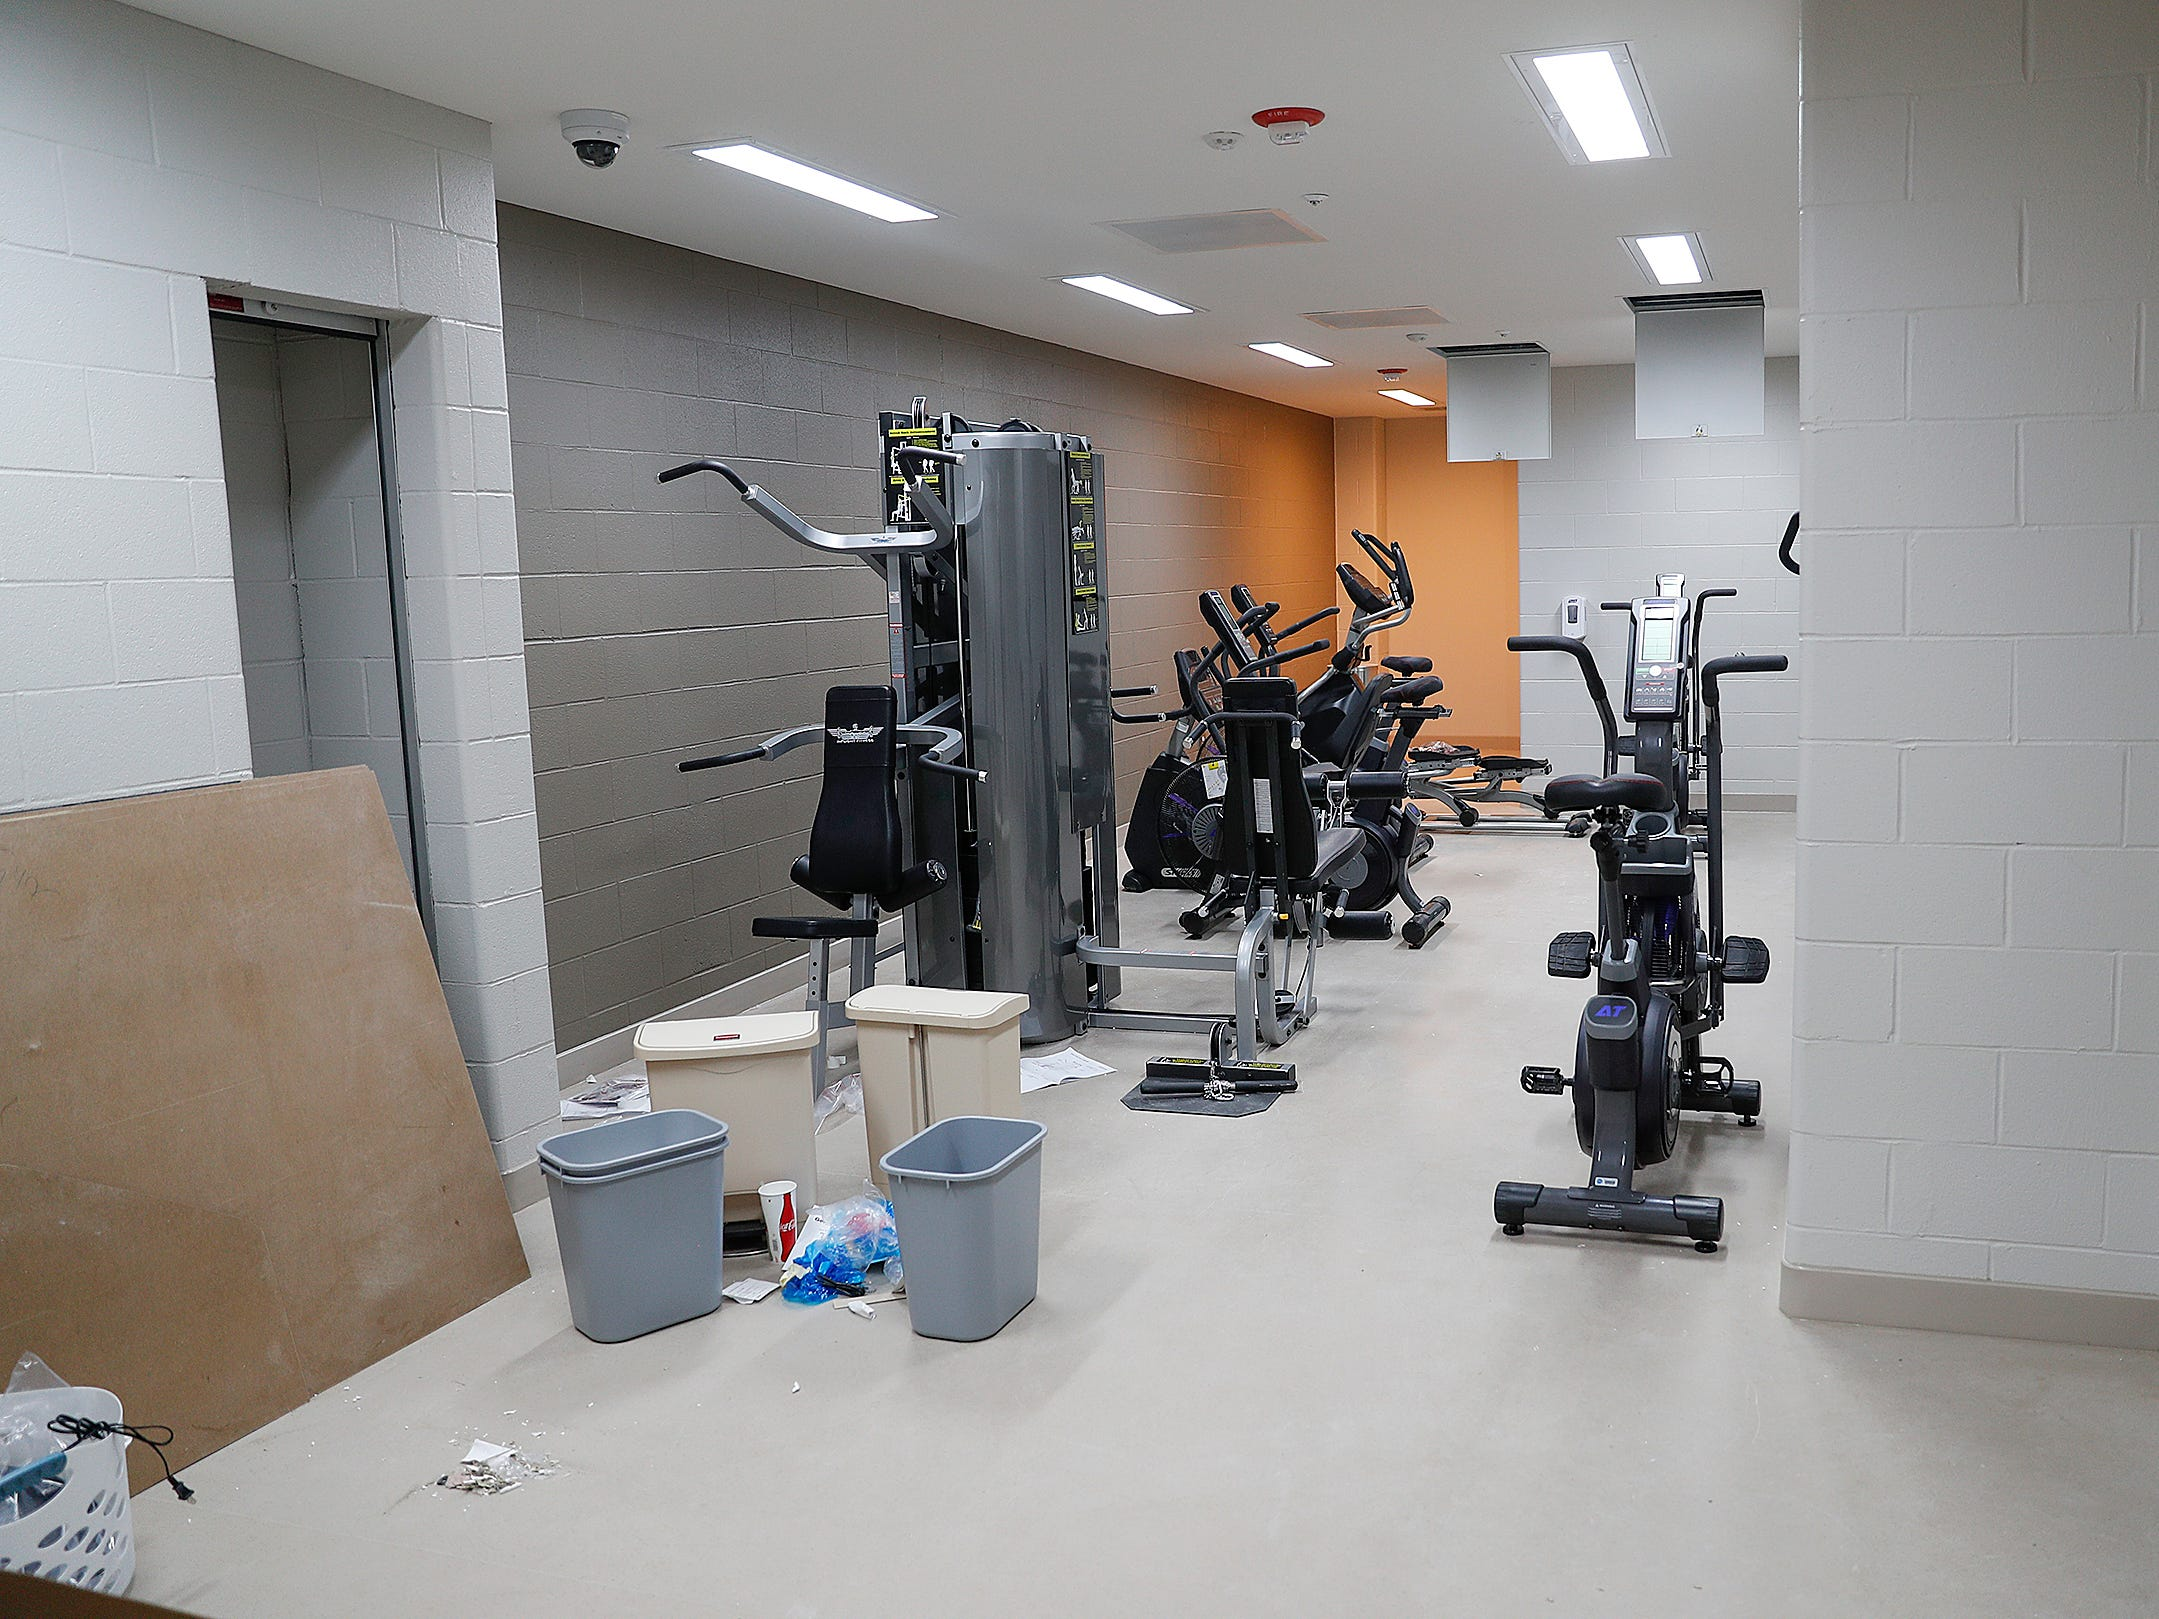 The exercise room in the Treatment Mall at the new NeuroDiagnostic Institute, at 5435 E 16th St., will replace LaRue Carter as the center for mental health care on Wednesday, March 13, 2019.